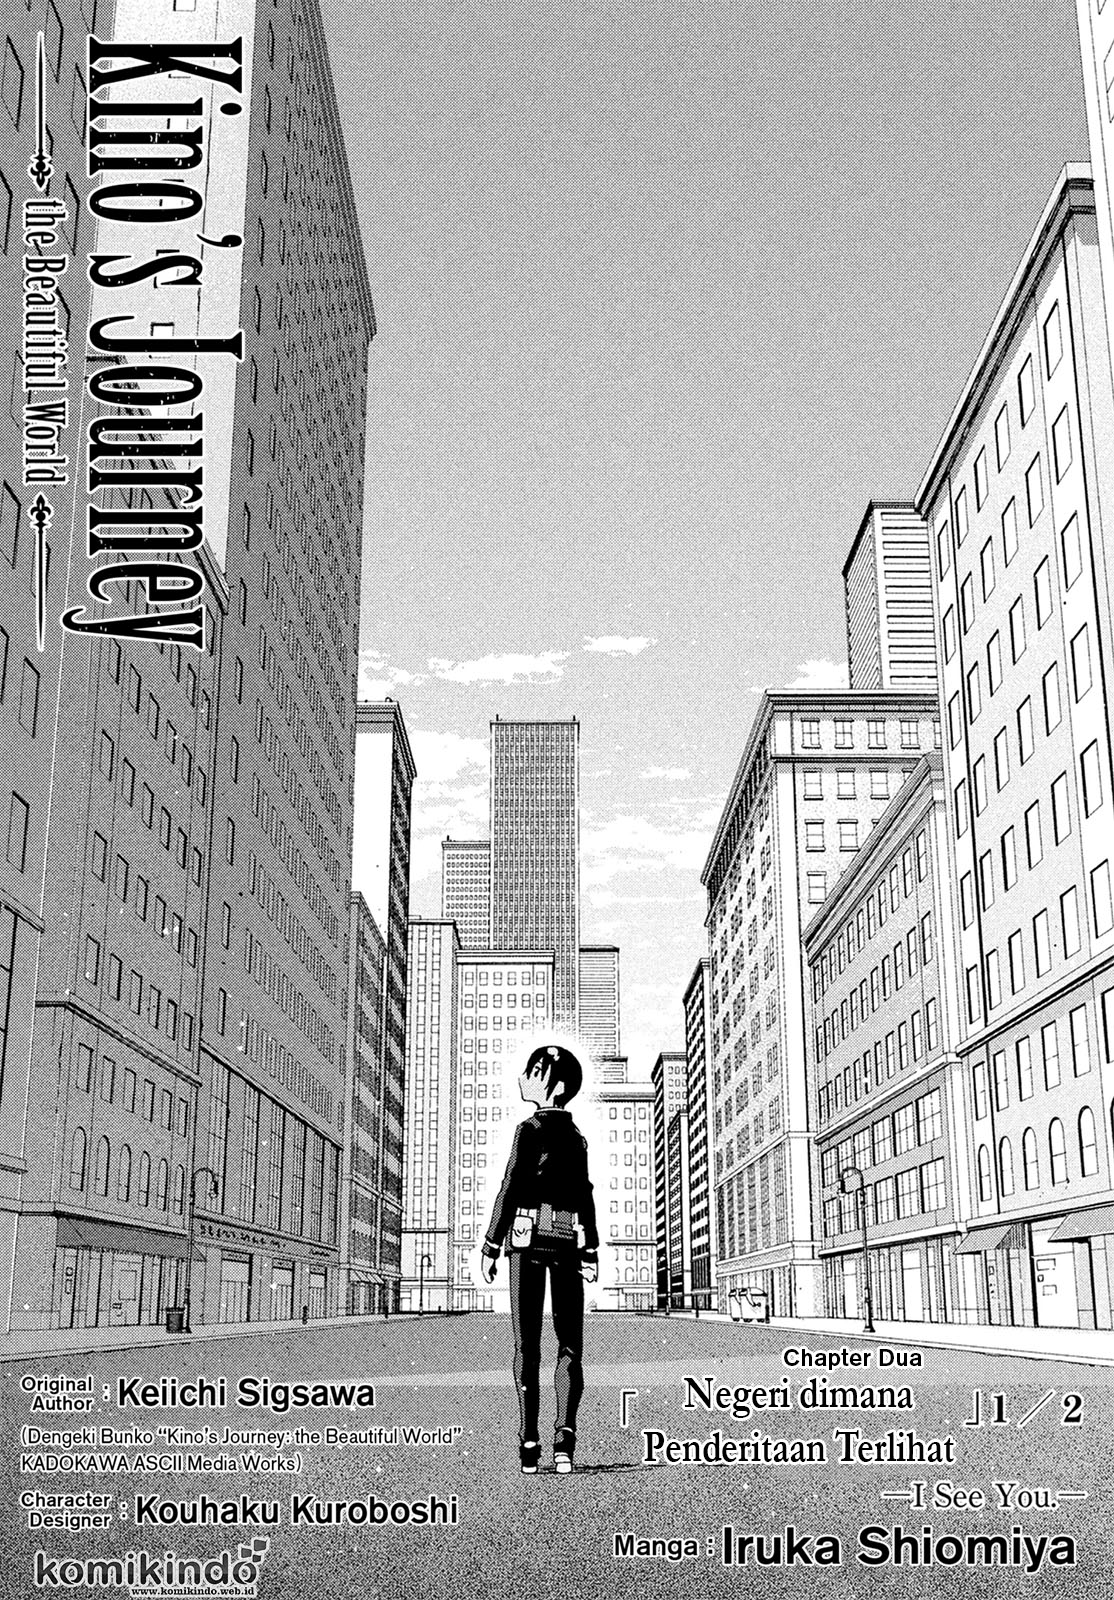 Baca Manga Kino no Tabi -The Beautiful World- (Shiomiya) Chapter 2 Bahasa Indonesia